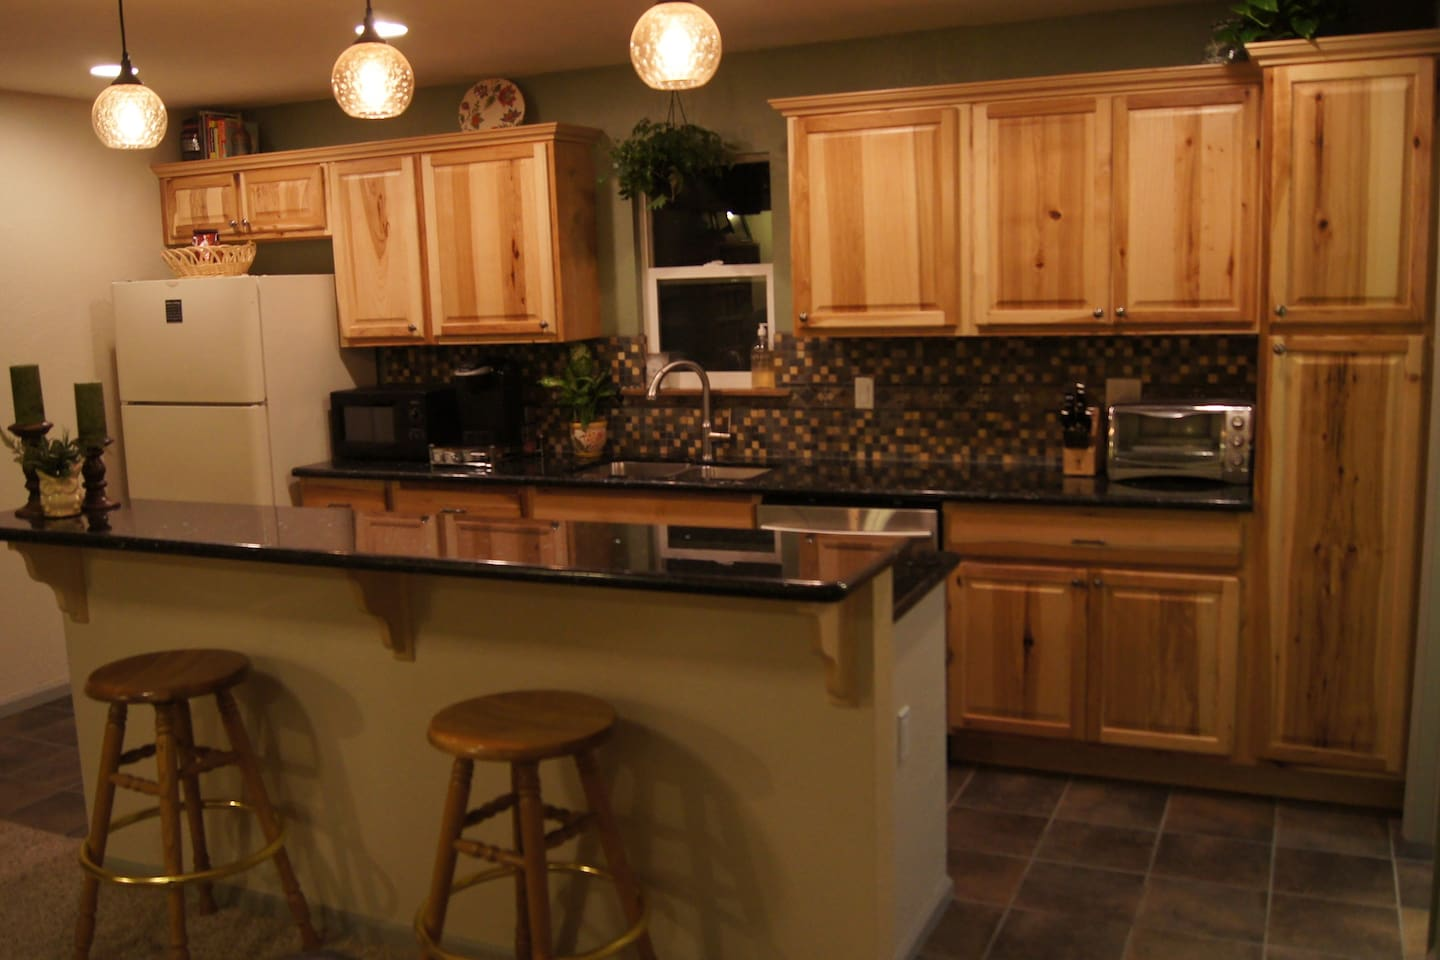 Newly renovated 1 bedroom / 1 bathroom w/ kitchen and hot tub